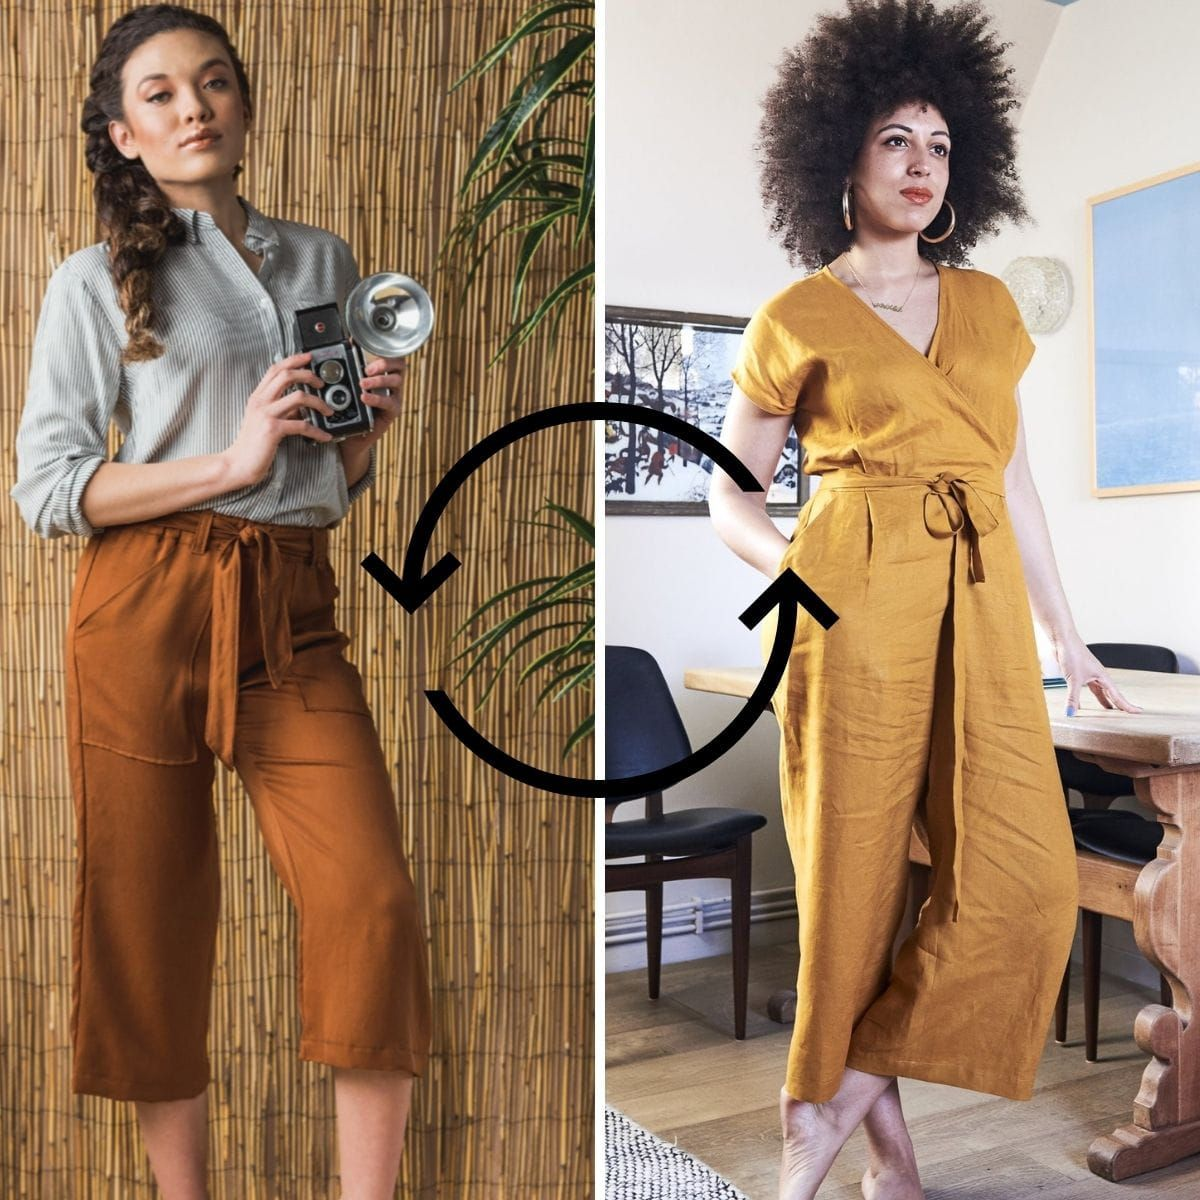 The Pagosa Pants and the Zadie Jumpsuit